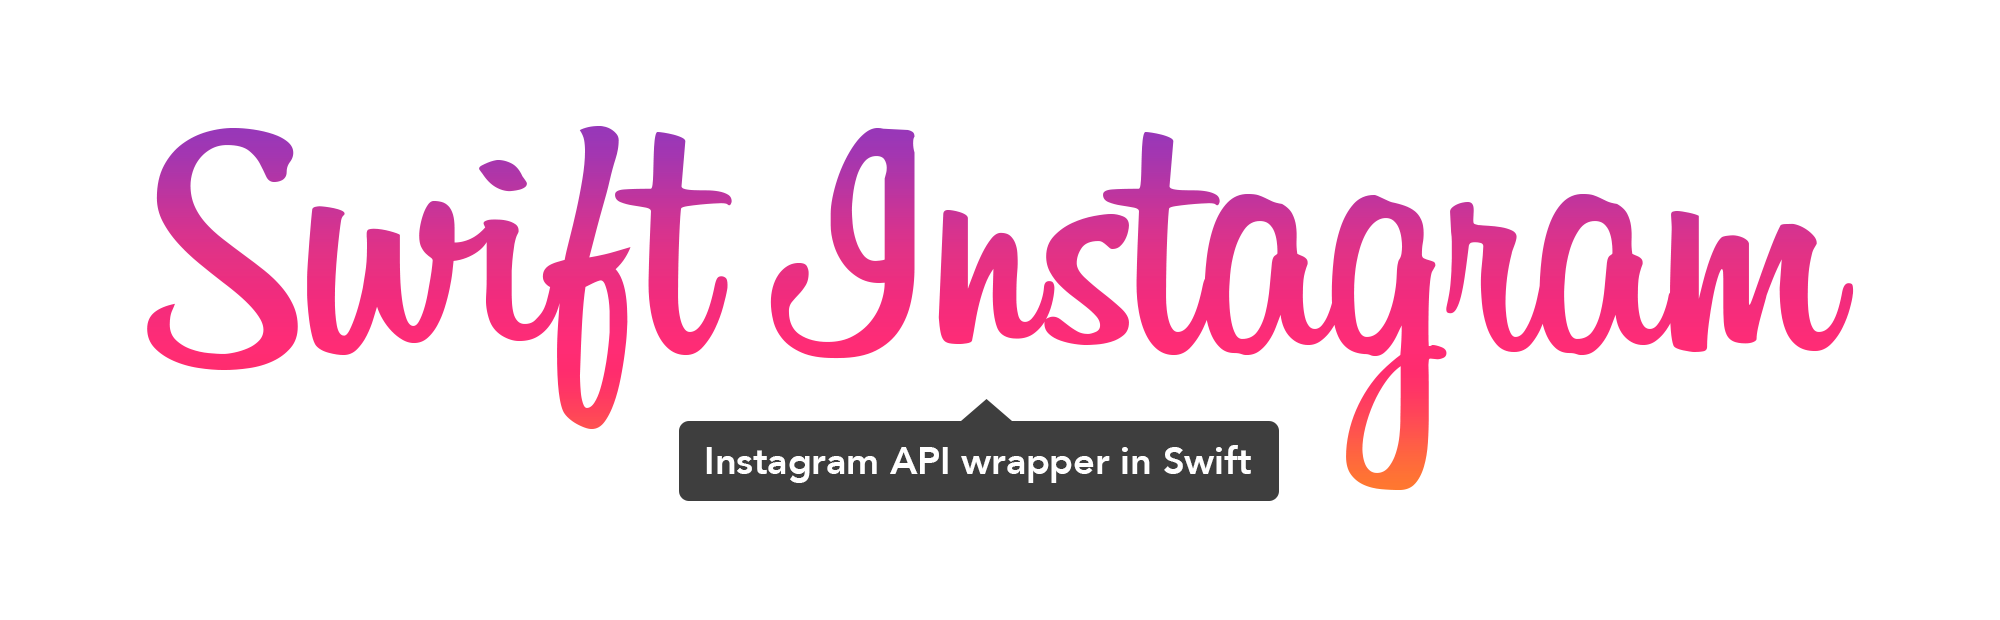 SwiftInstagram Logo